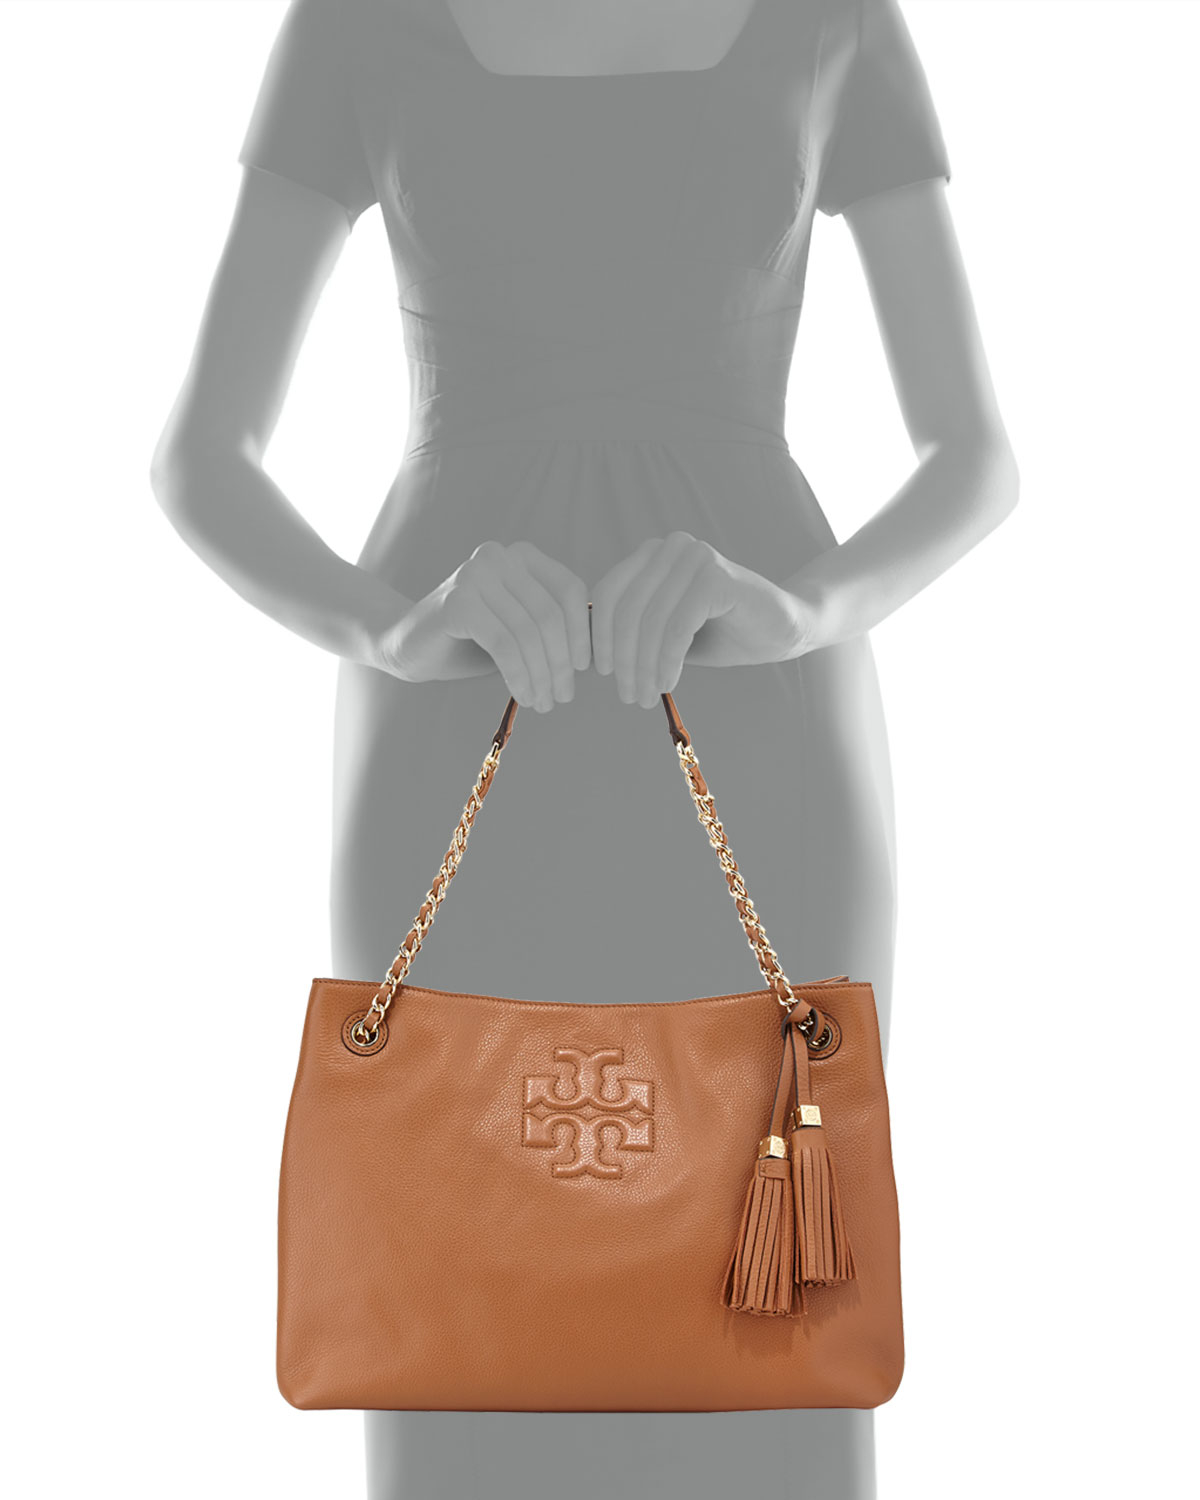 b658b1679d0e Lyst - Tory Burch Thea Large Chain Tote Bag in Brown